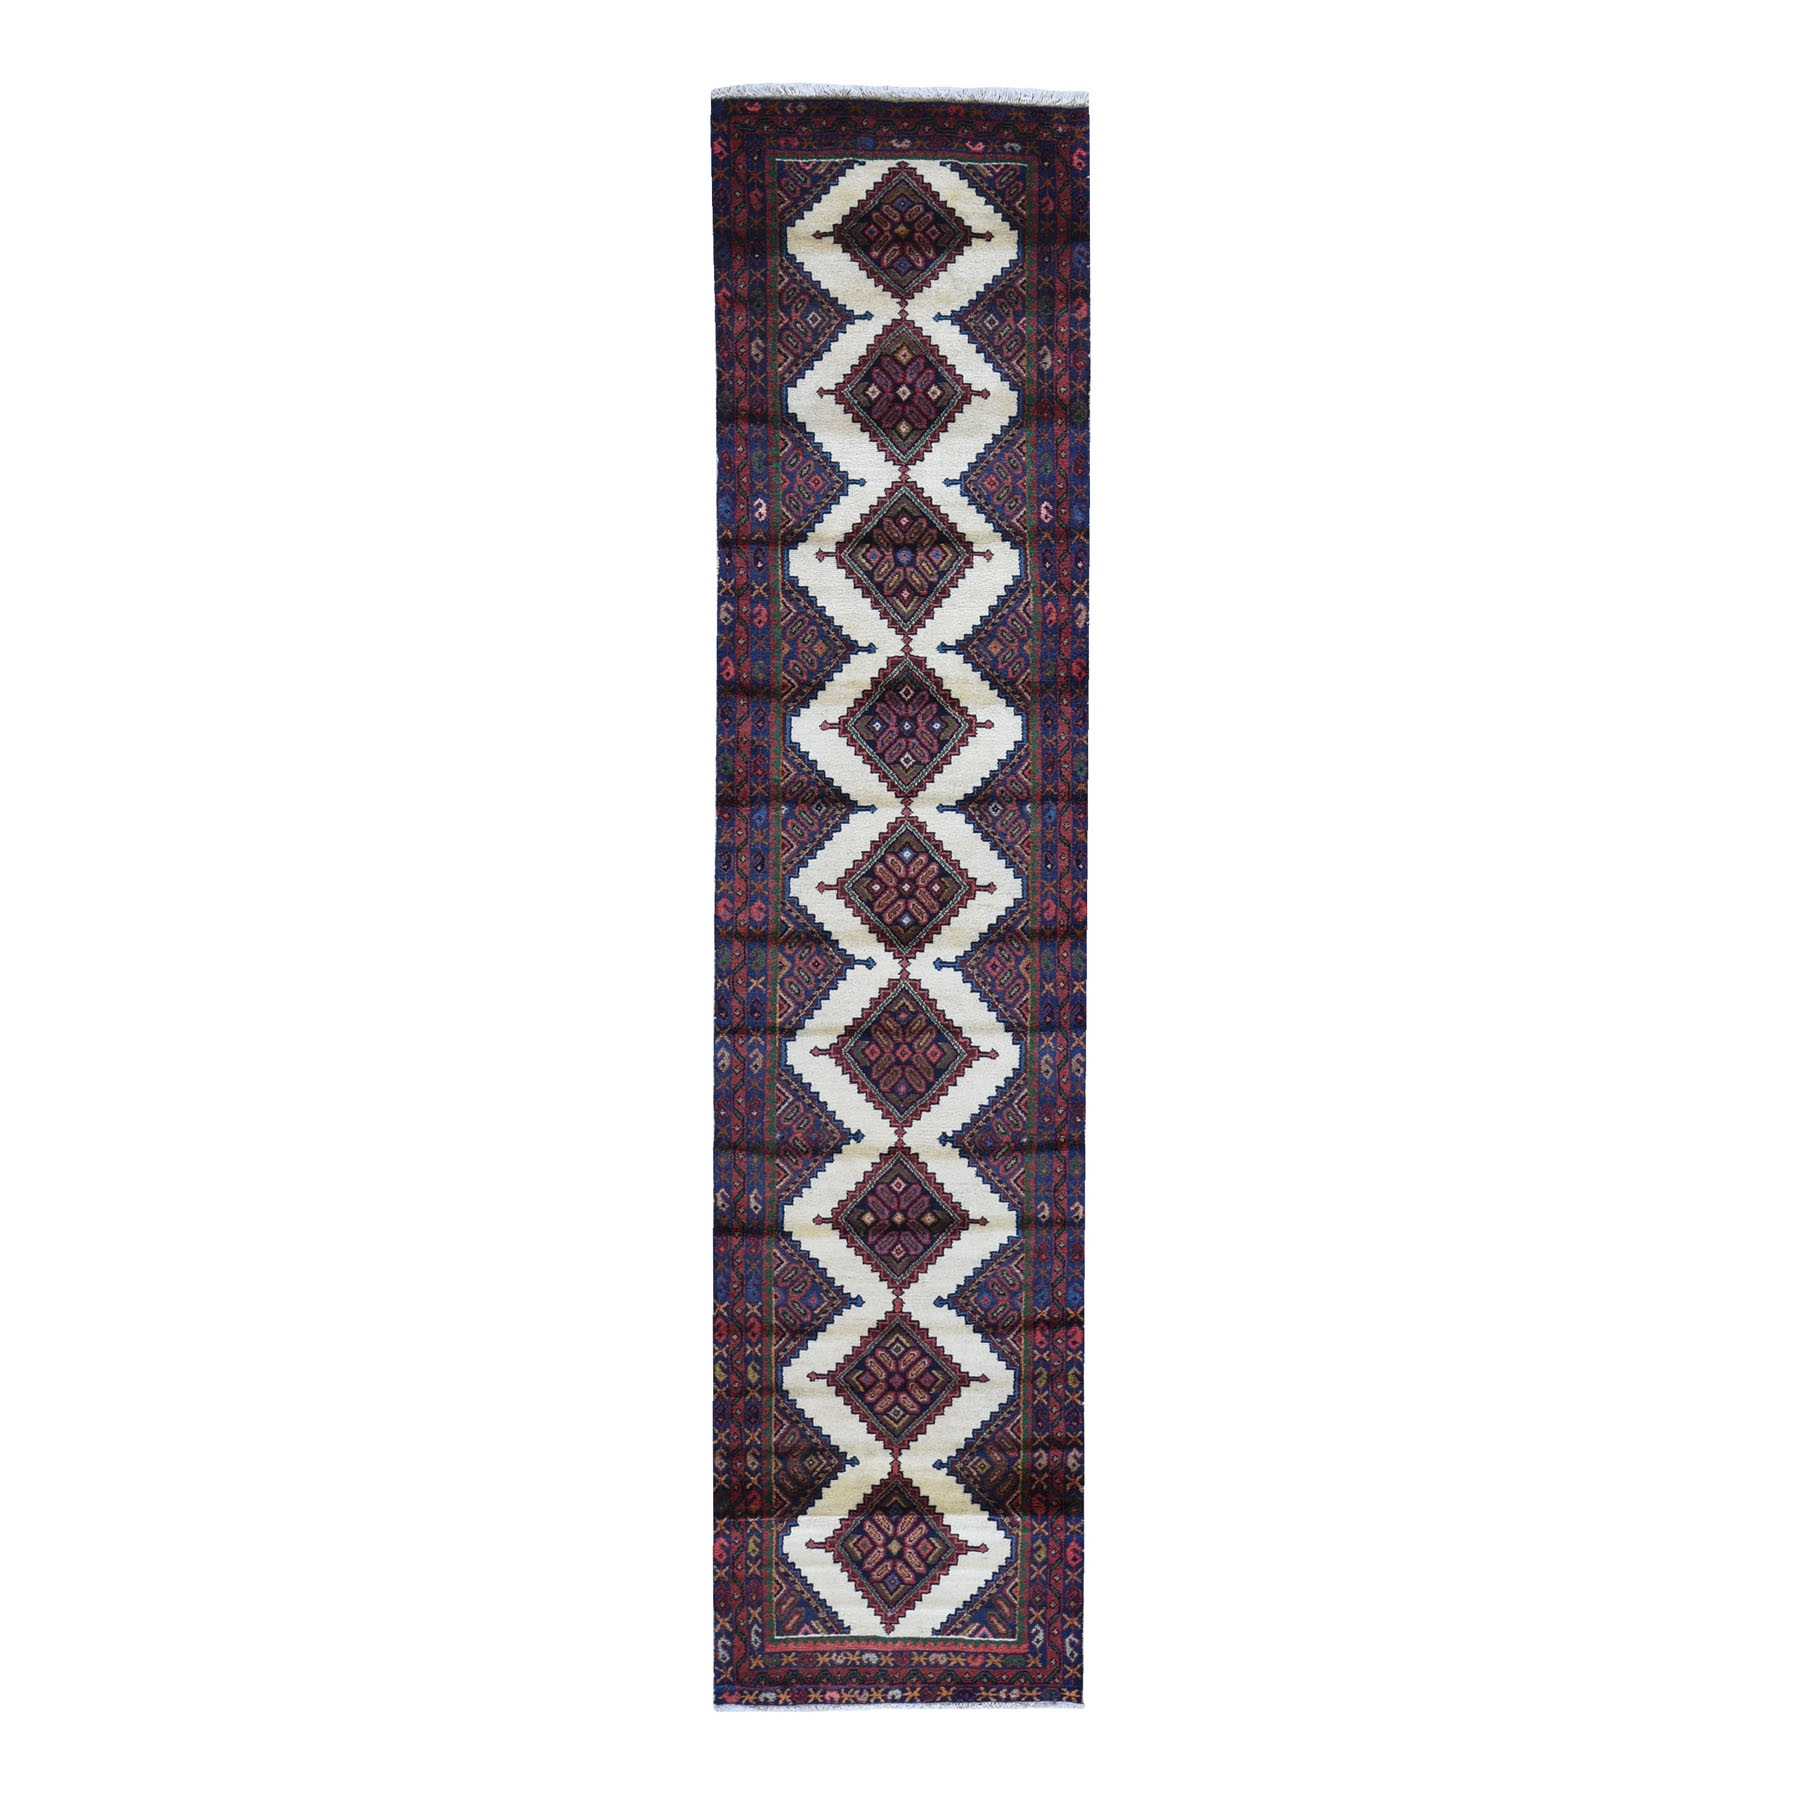 """2'6""""x10'5"""" New Persian Hamadan with Serrated Medallions Design Pure Wool Hand Knotted Oriental Rug"""